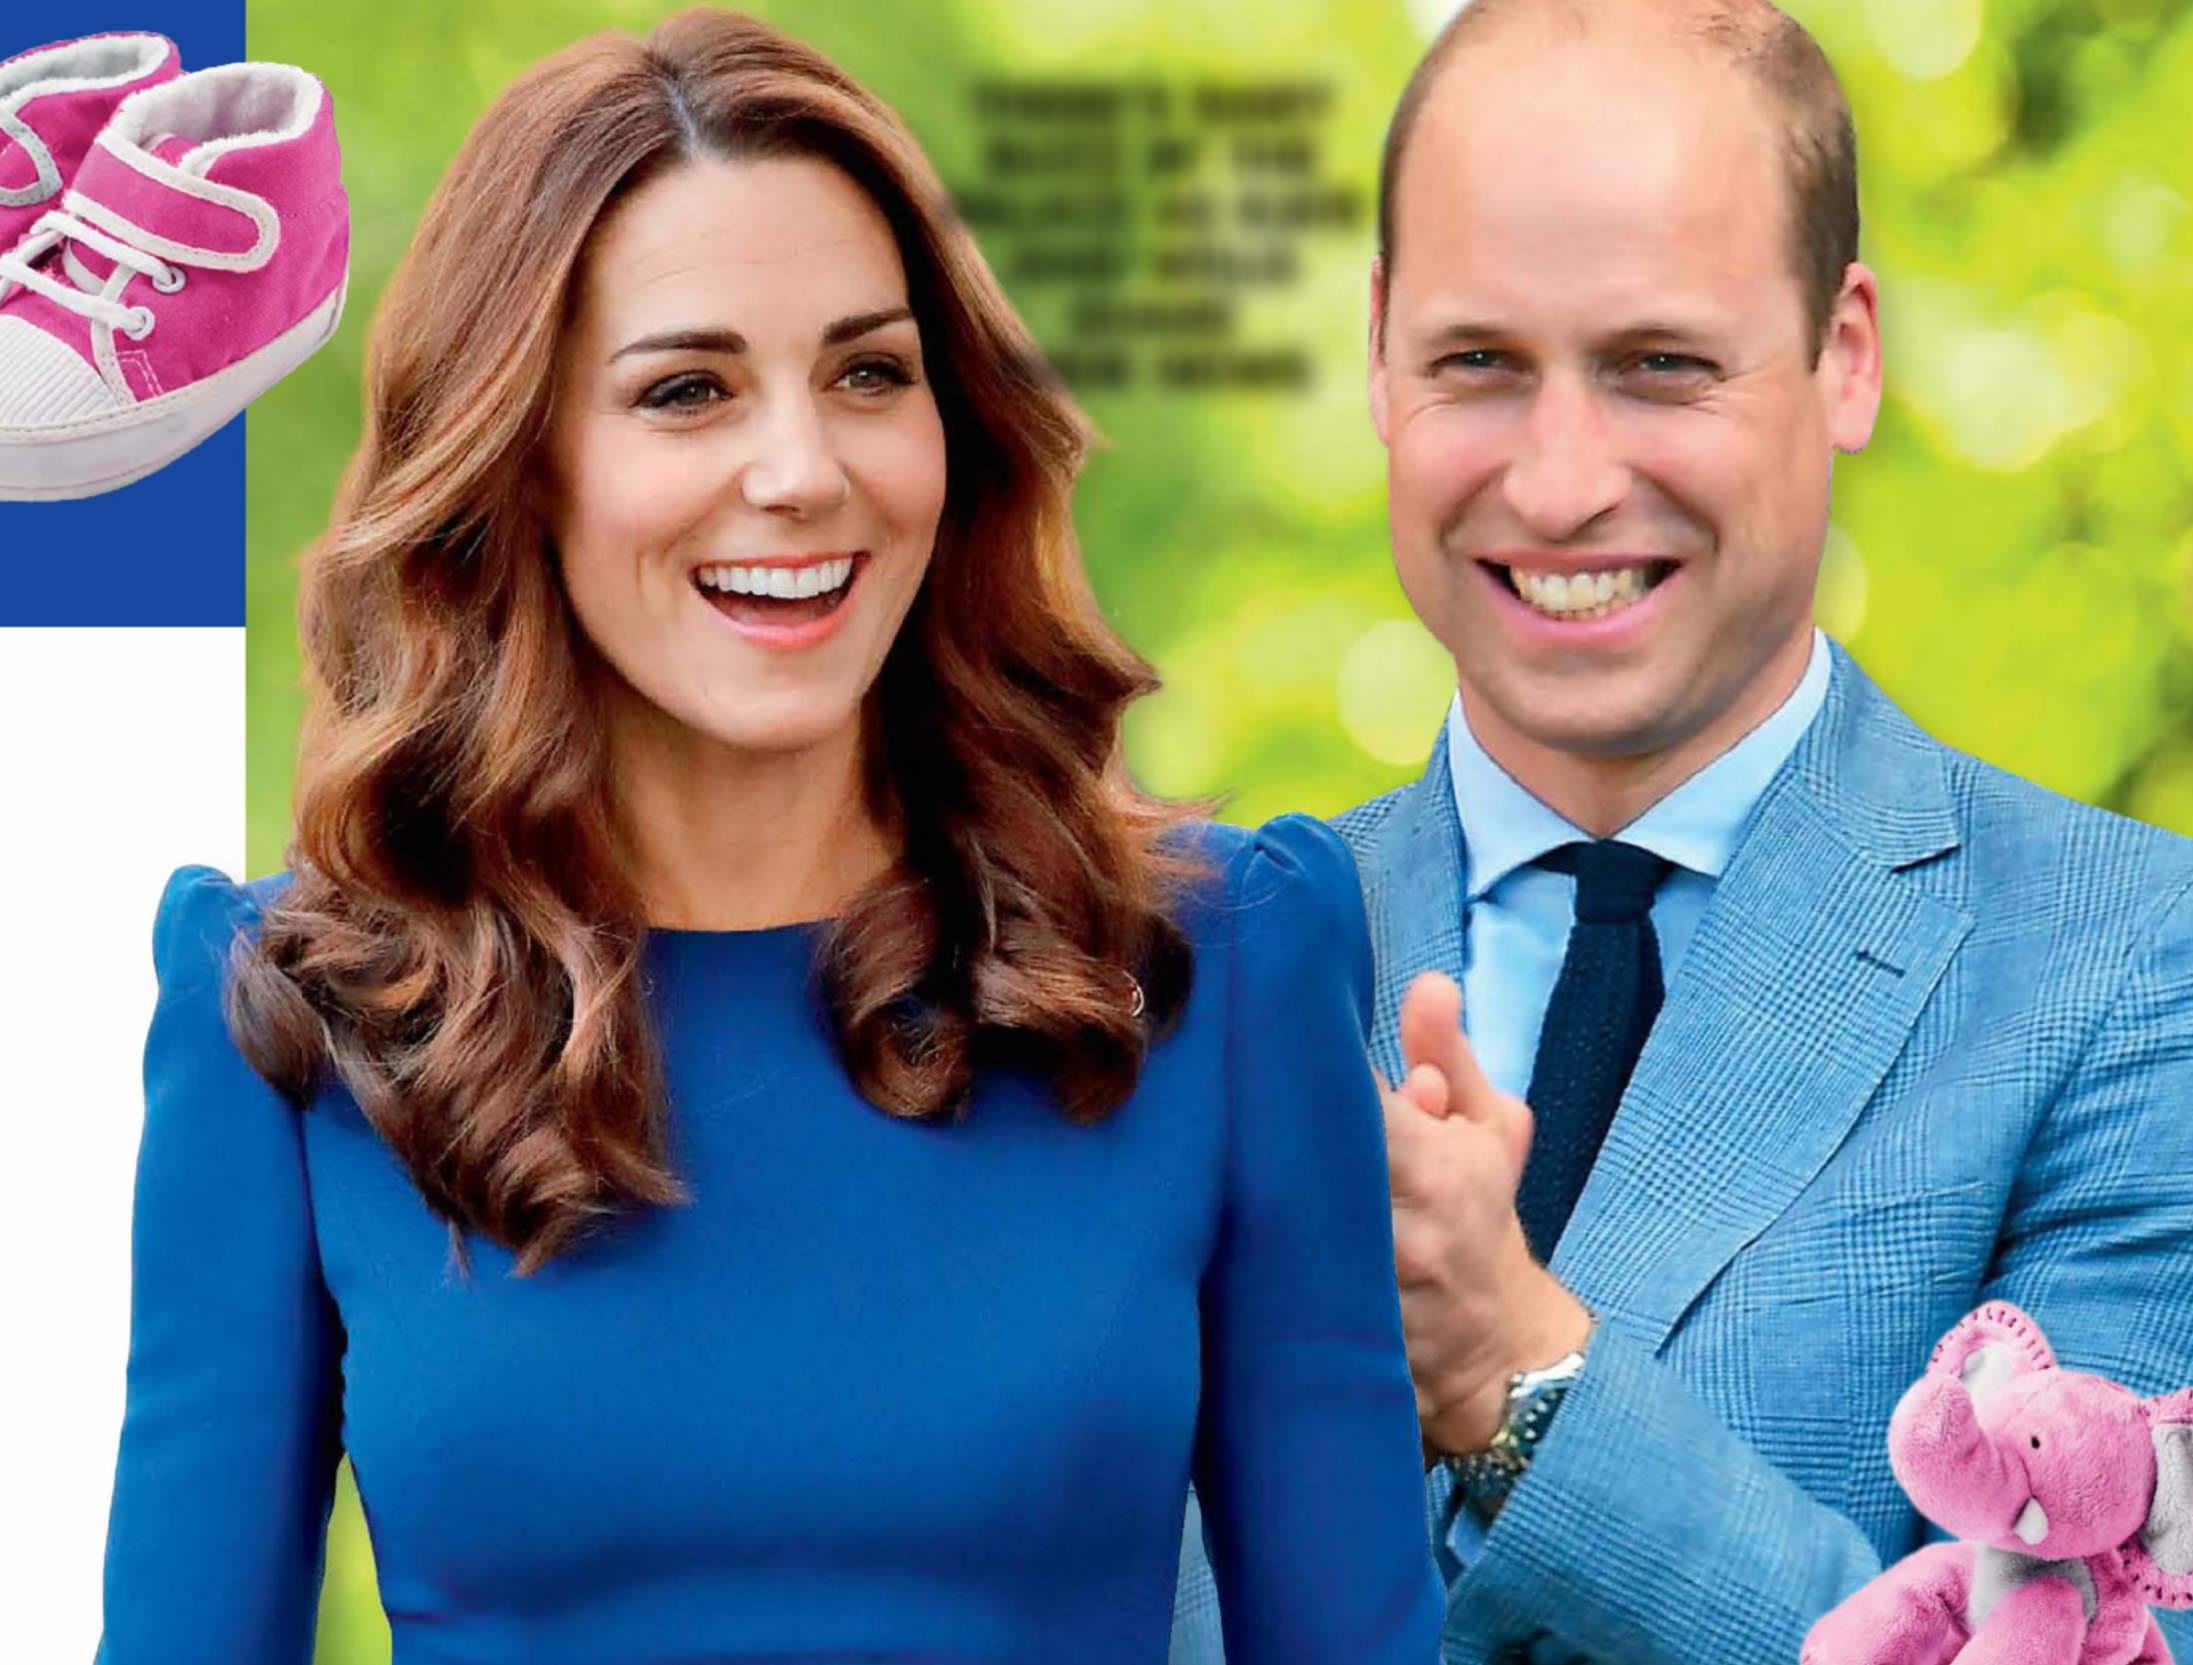 Kate & Wills -It's Baby Number 4!